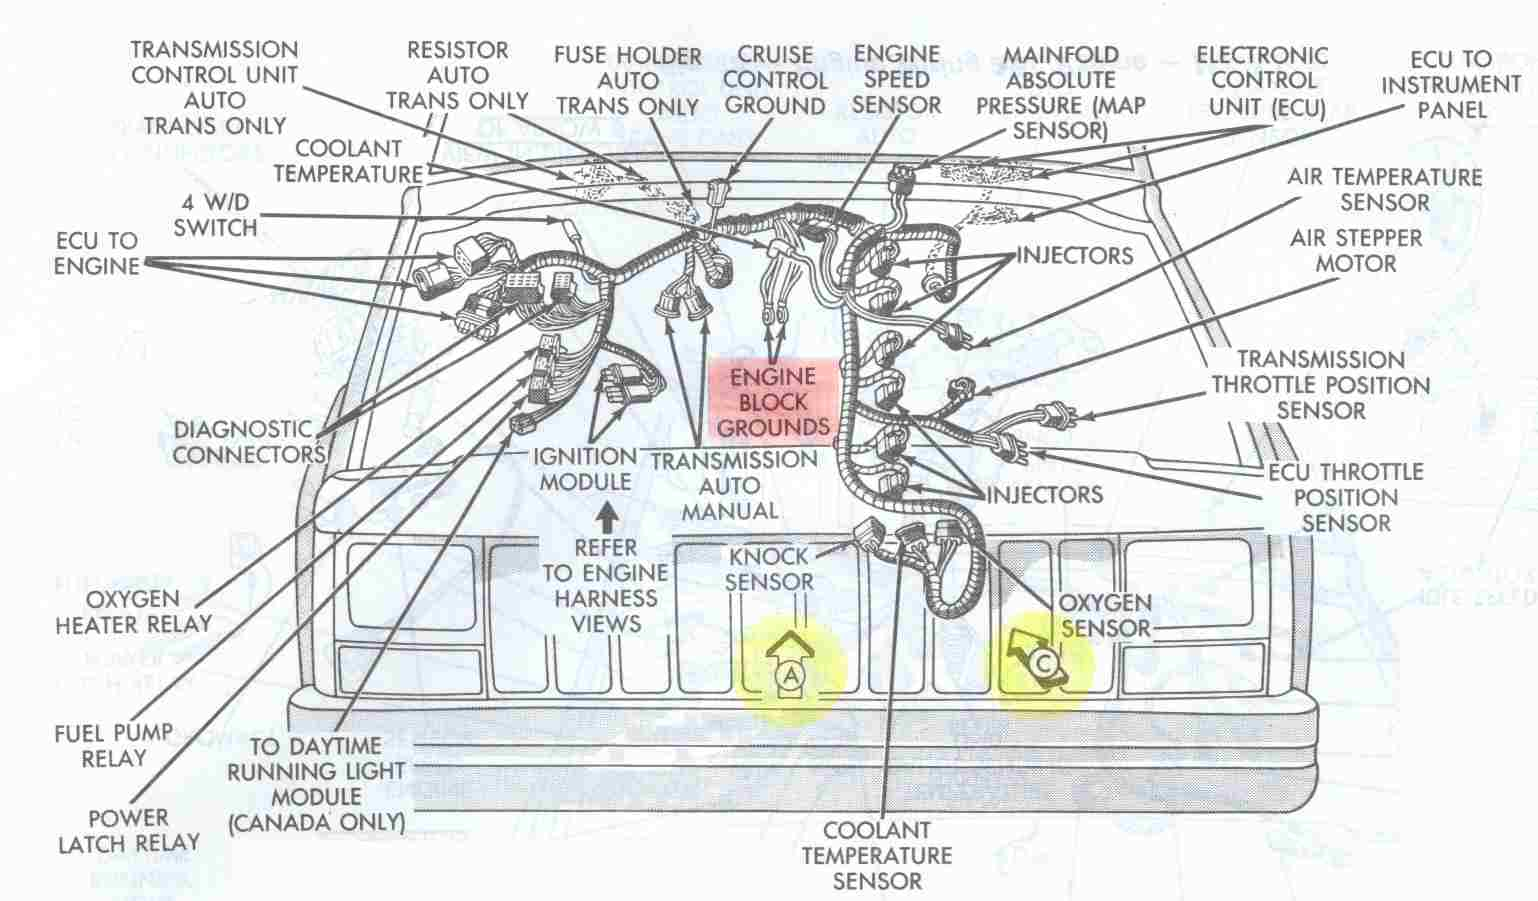 Electrical_Engine_Ground_Points_Overview jeep cherokee electrical diagnosing erratic behavior of engine 2000 jeep grand cherokee engine wiring harness at gsmx.co